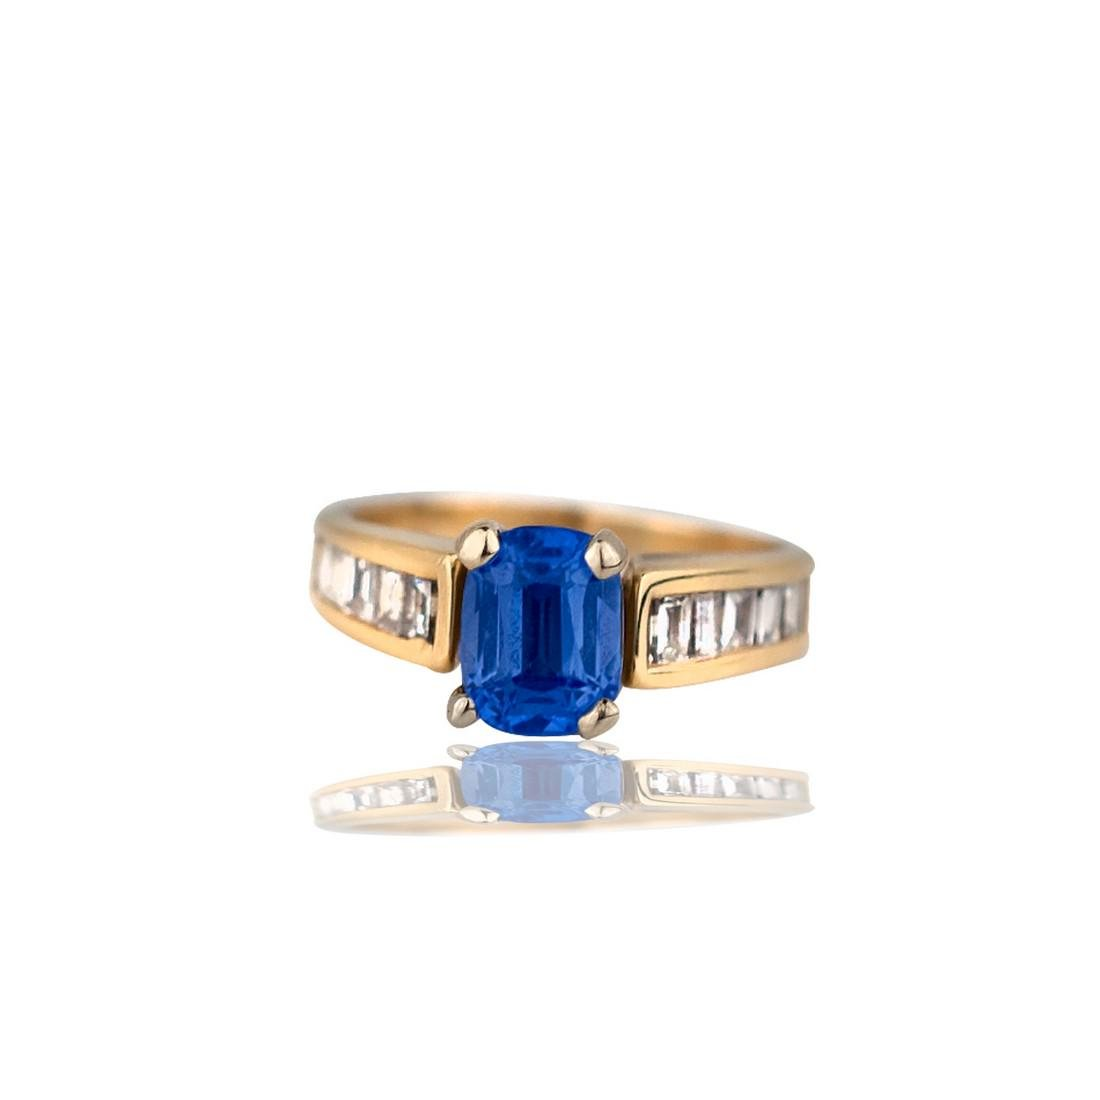 Emerald Cut Tanzanite and Baguette Diamonds, 1.38 TCW